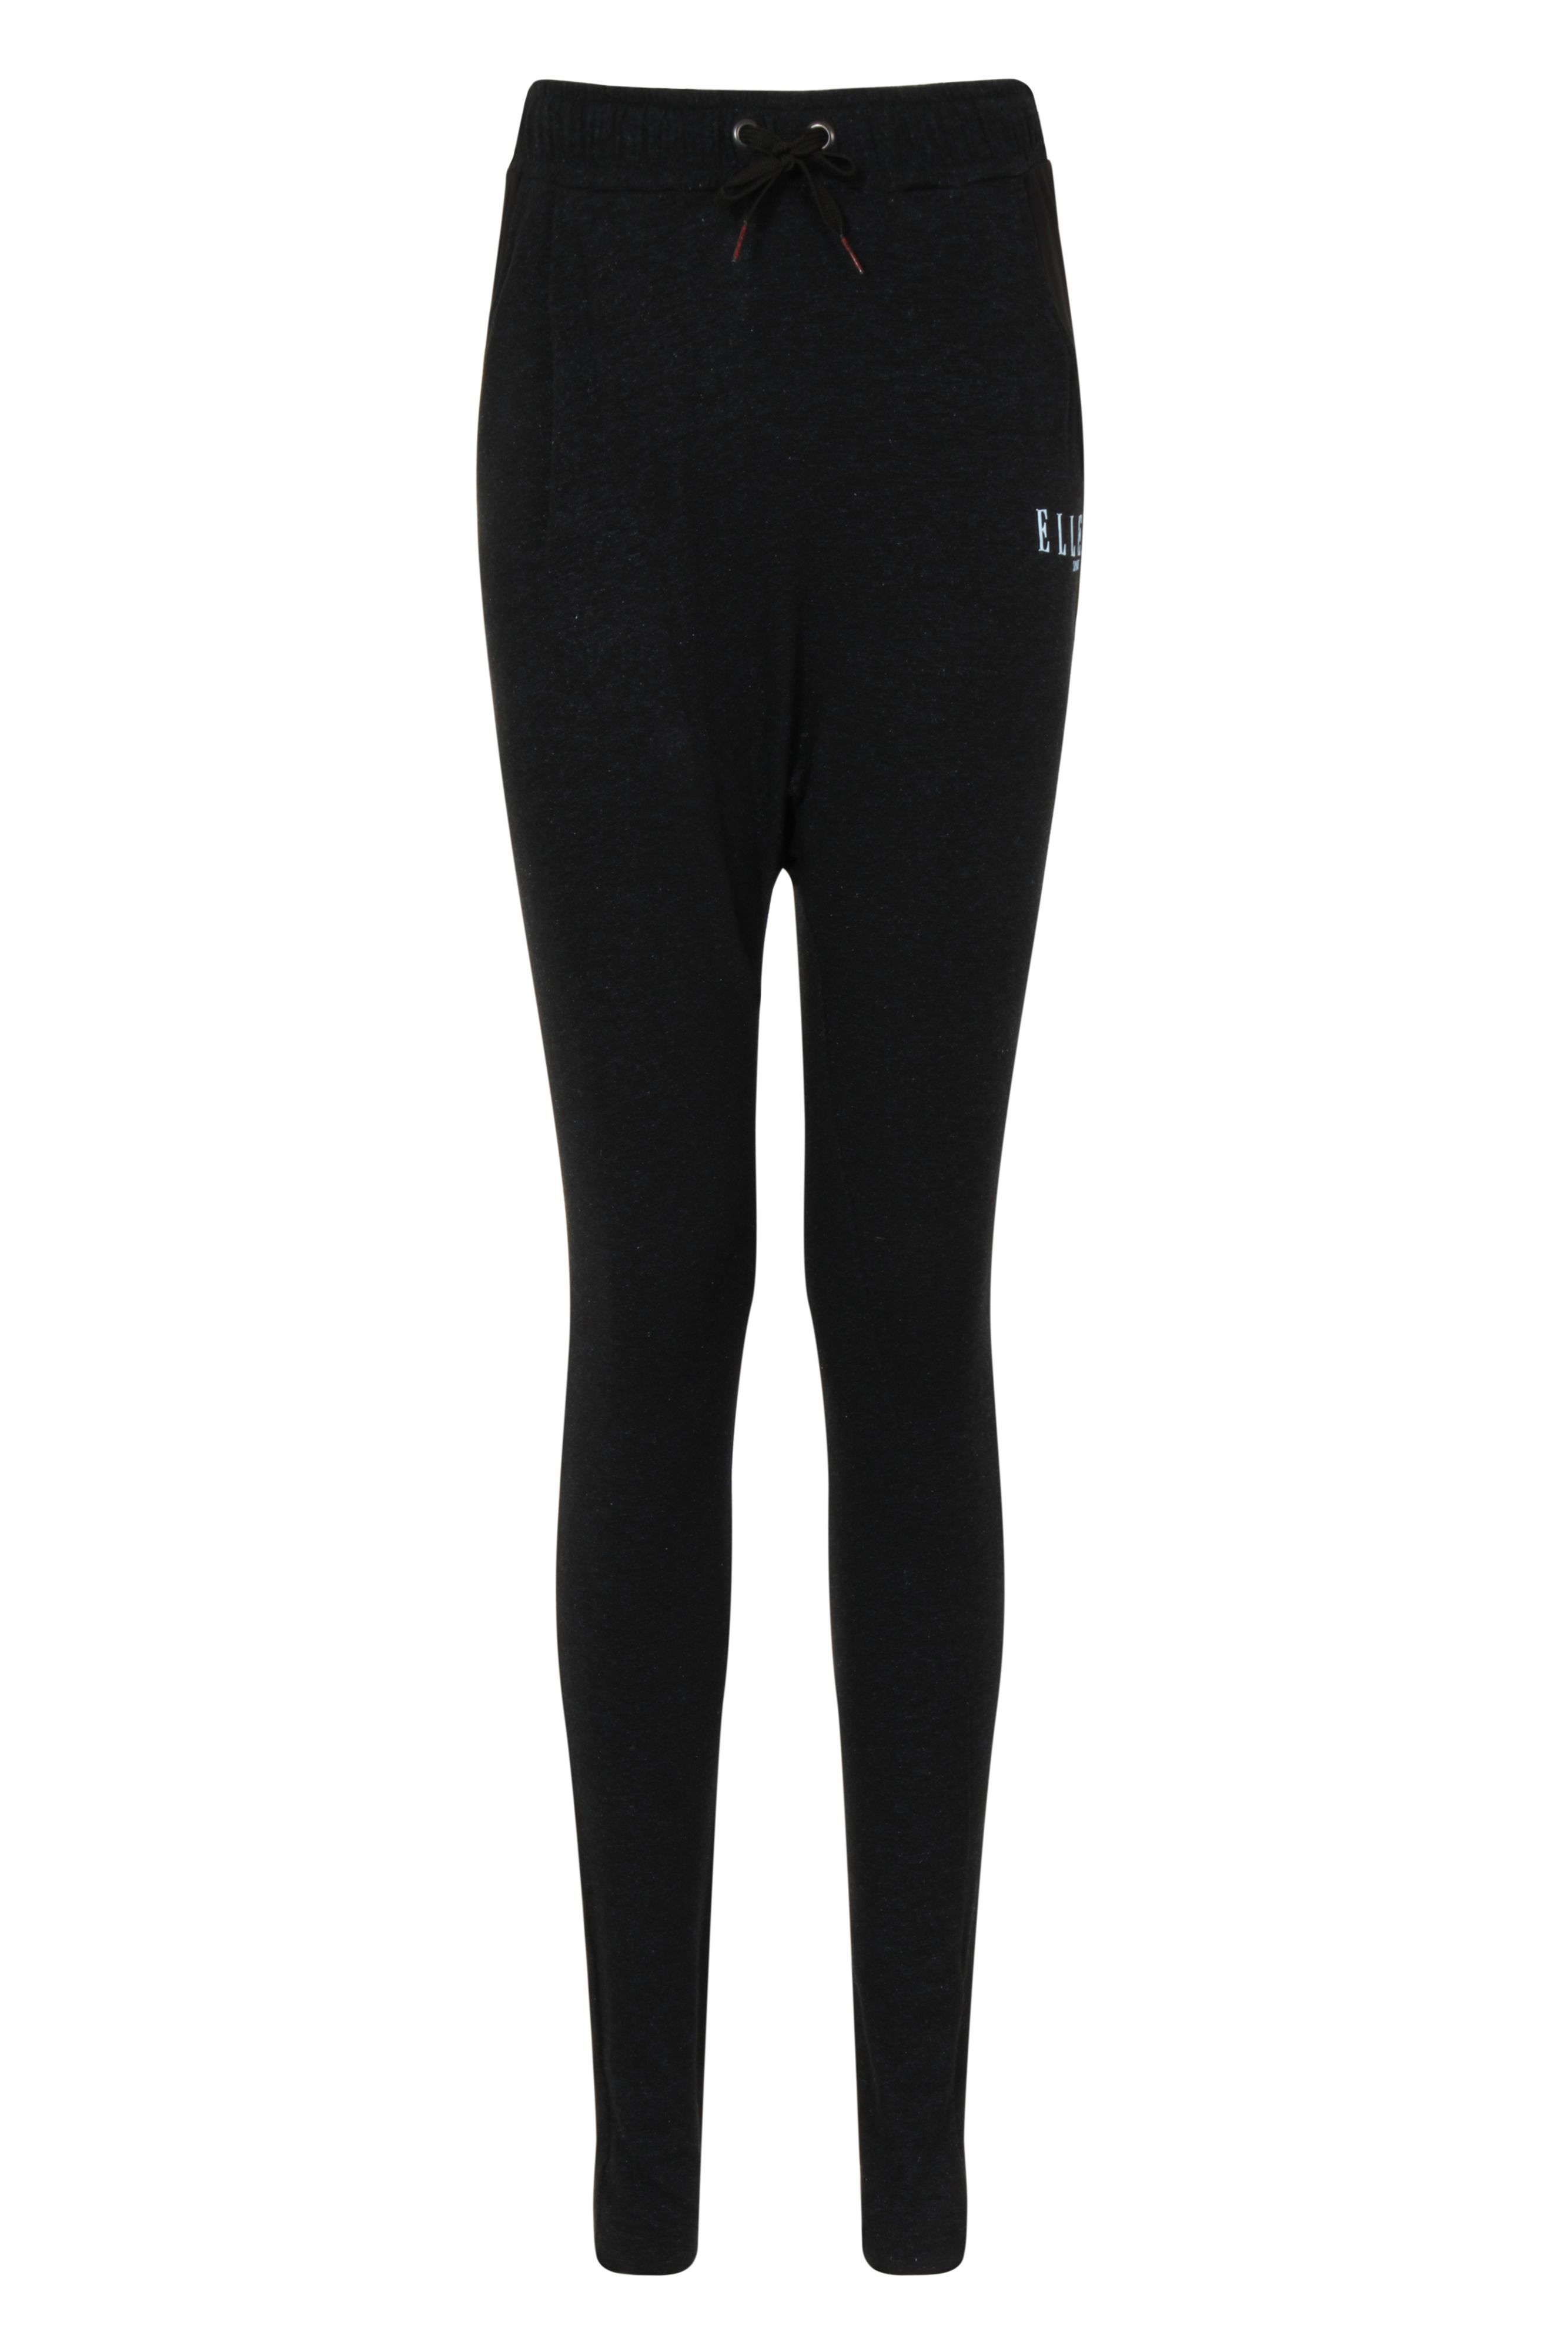 Elle Sport Super Soft Slim Leg Lounge Pant, Midnight